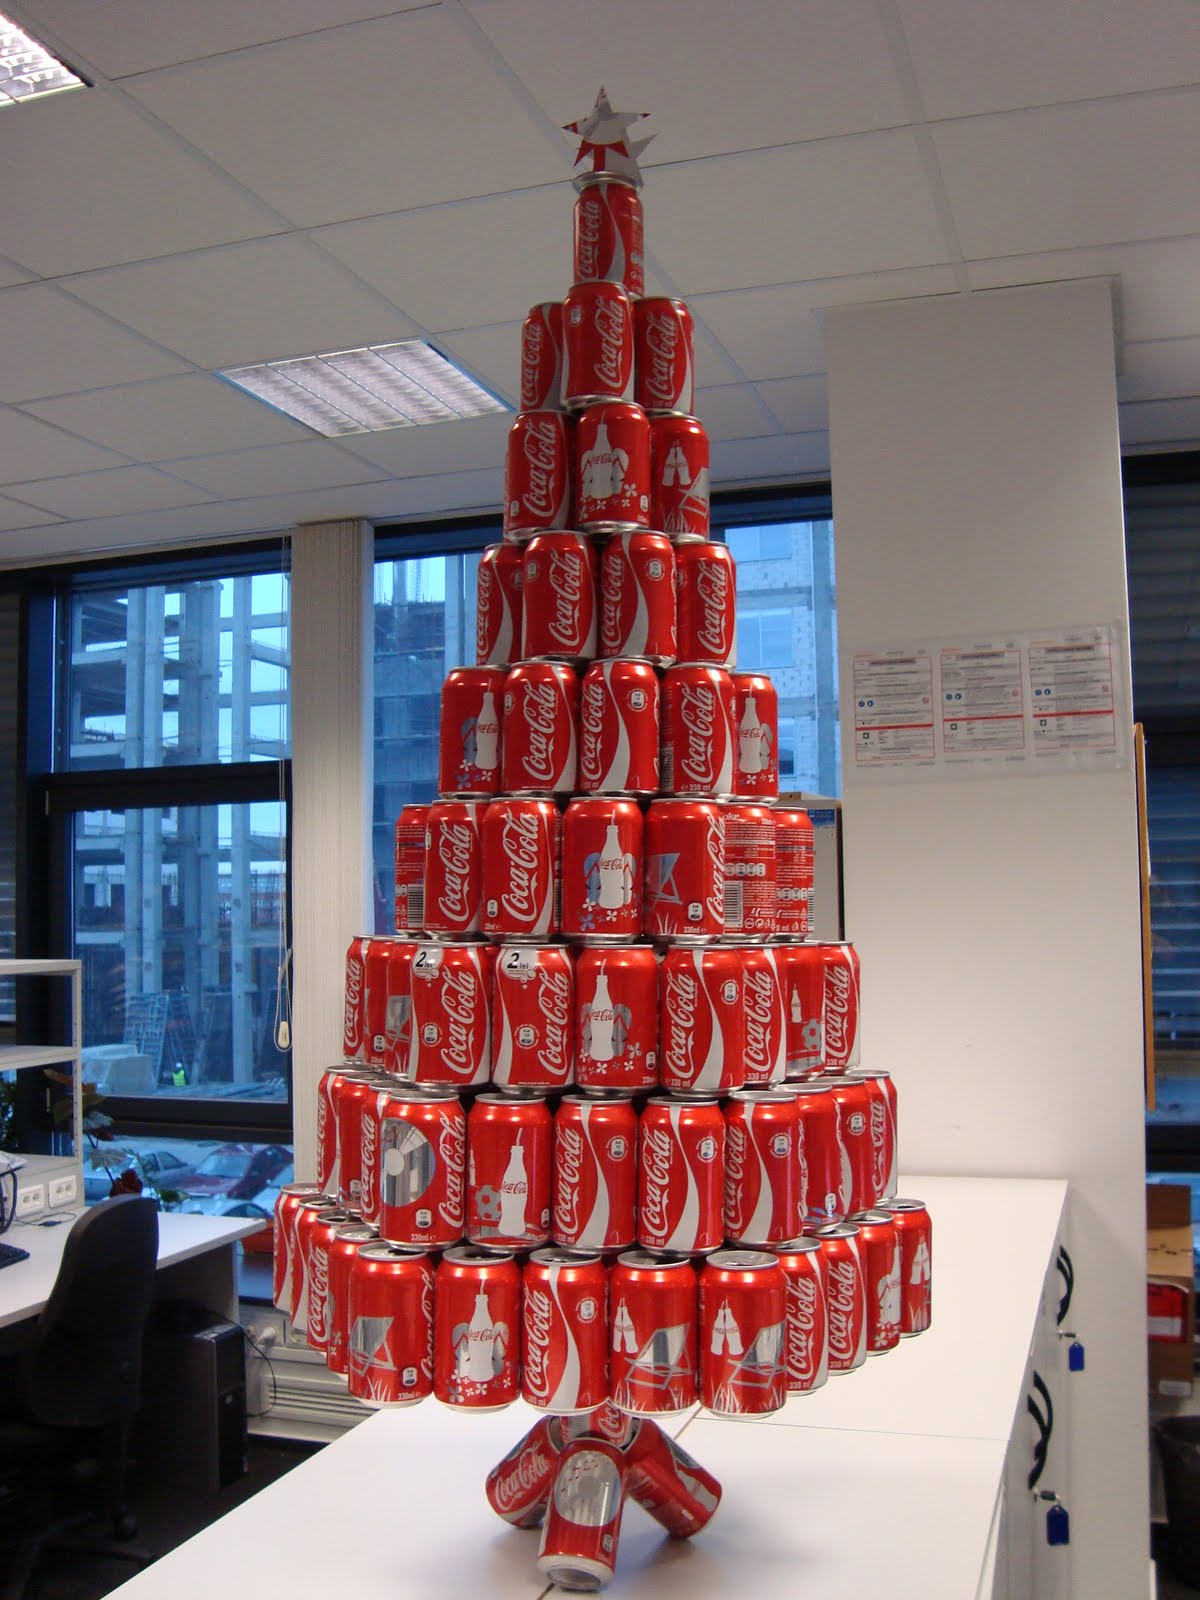 And the best christmas tree goes to